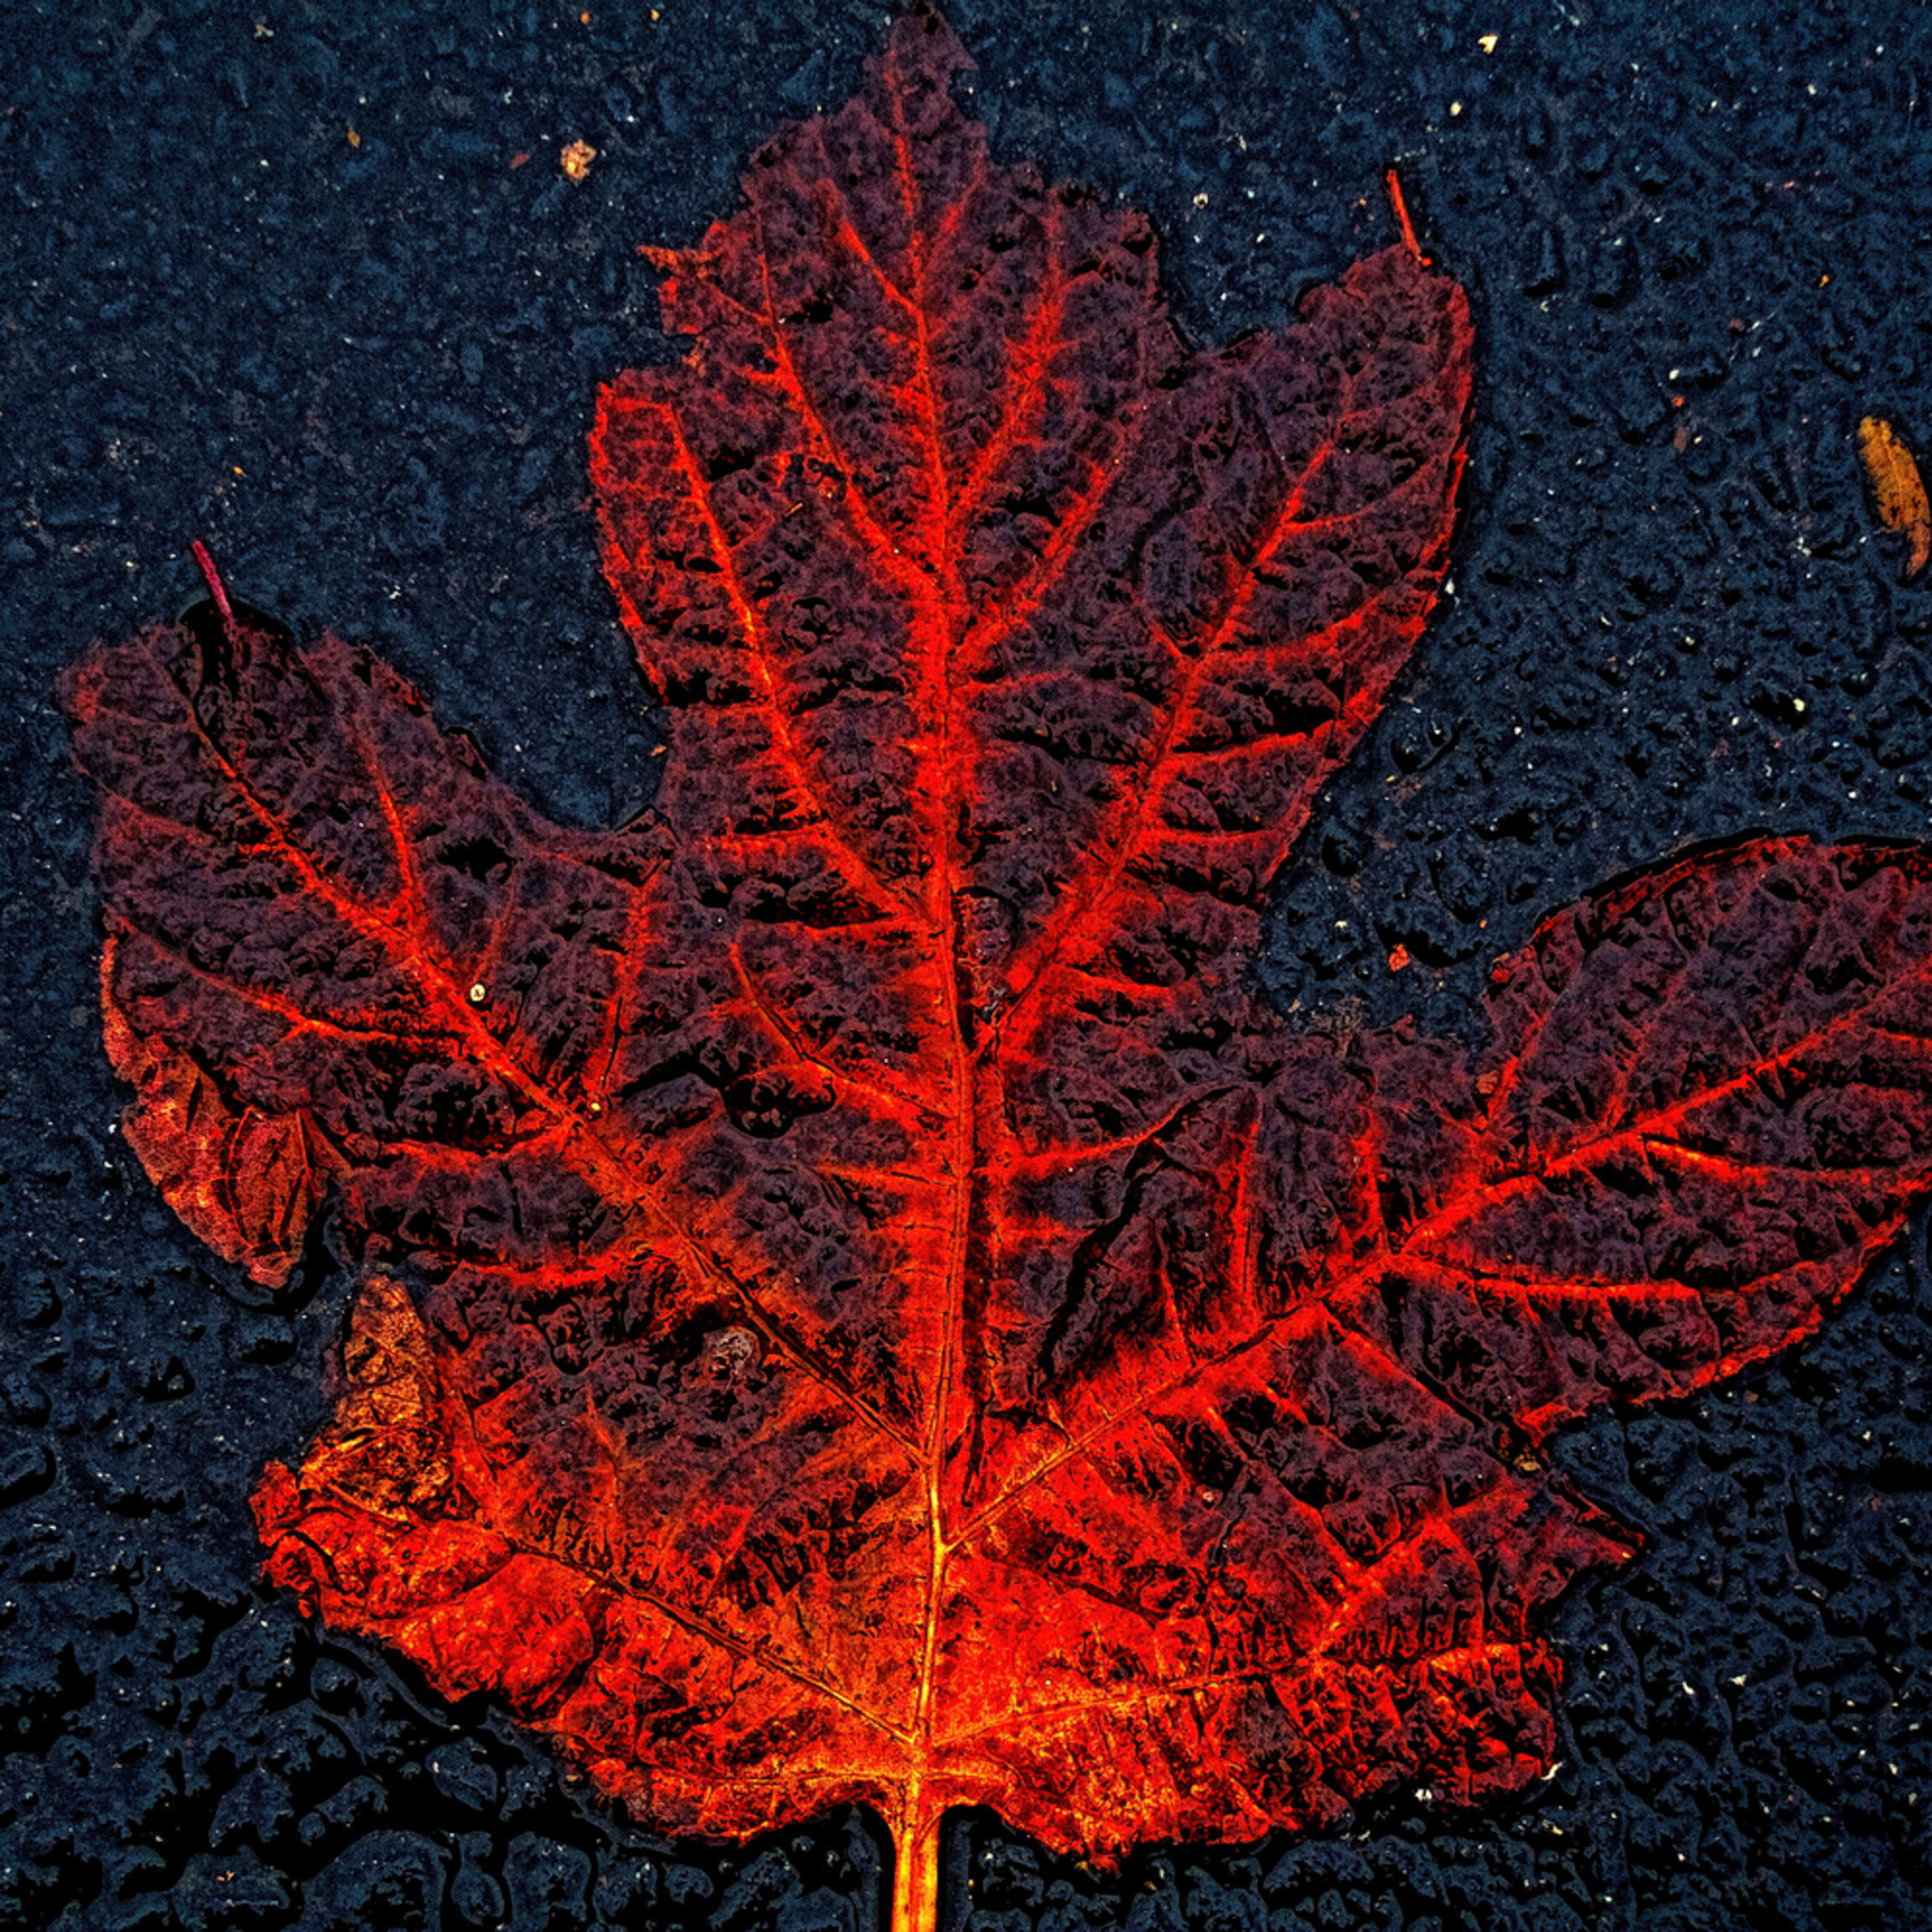 Decaying leaf on pavement ybnisk